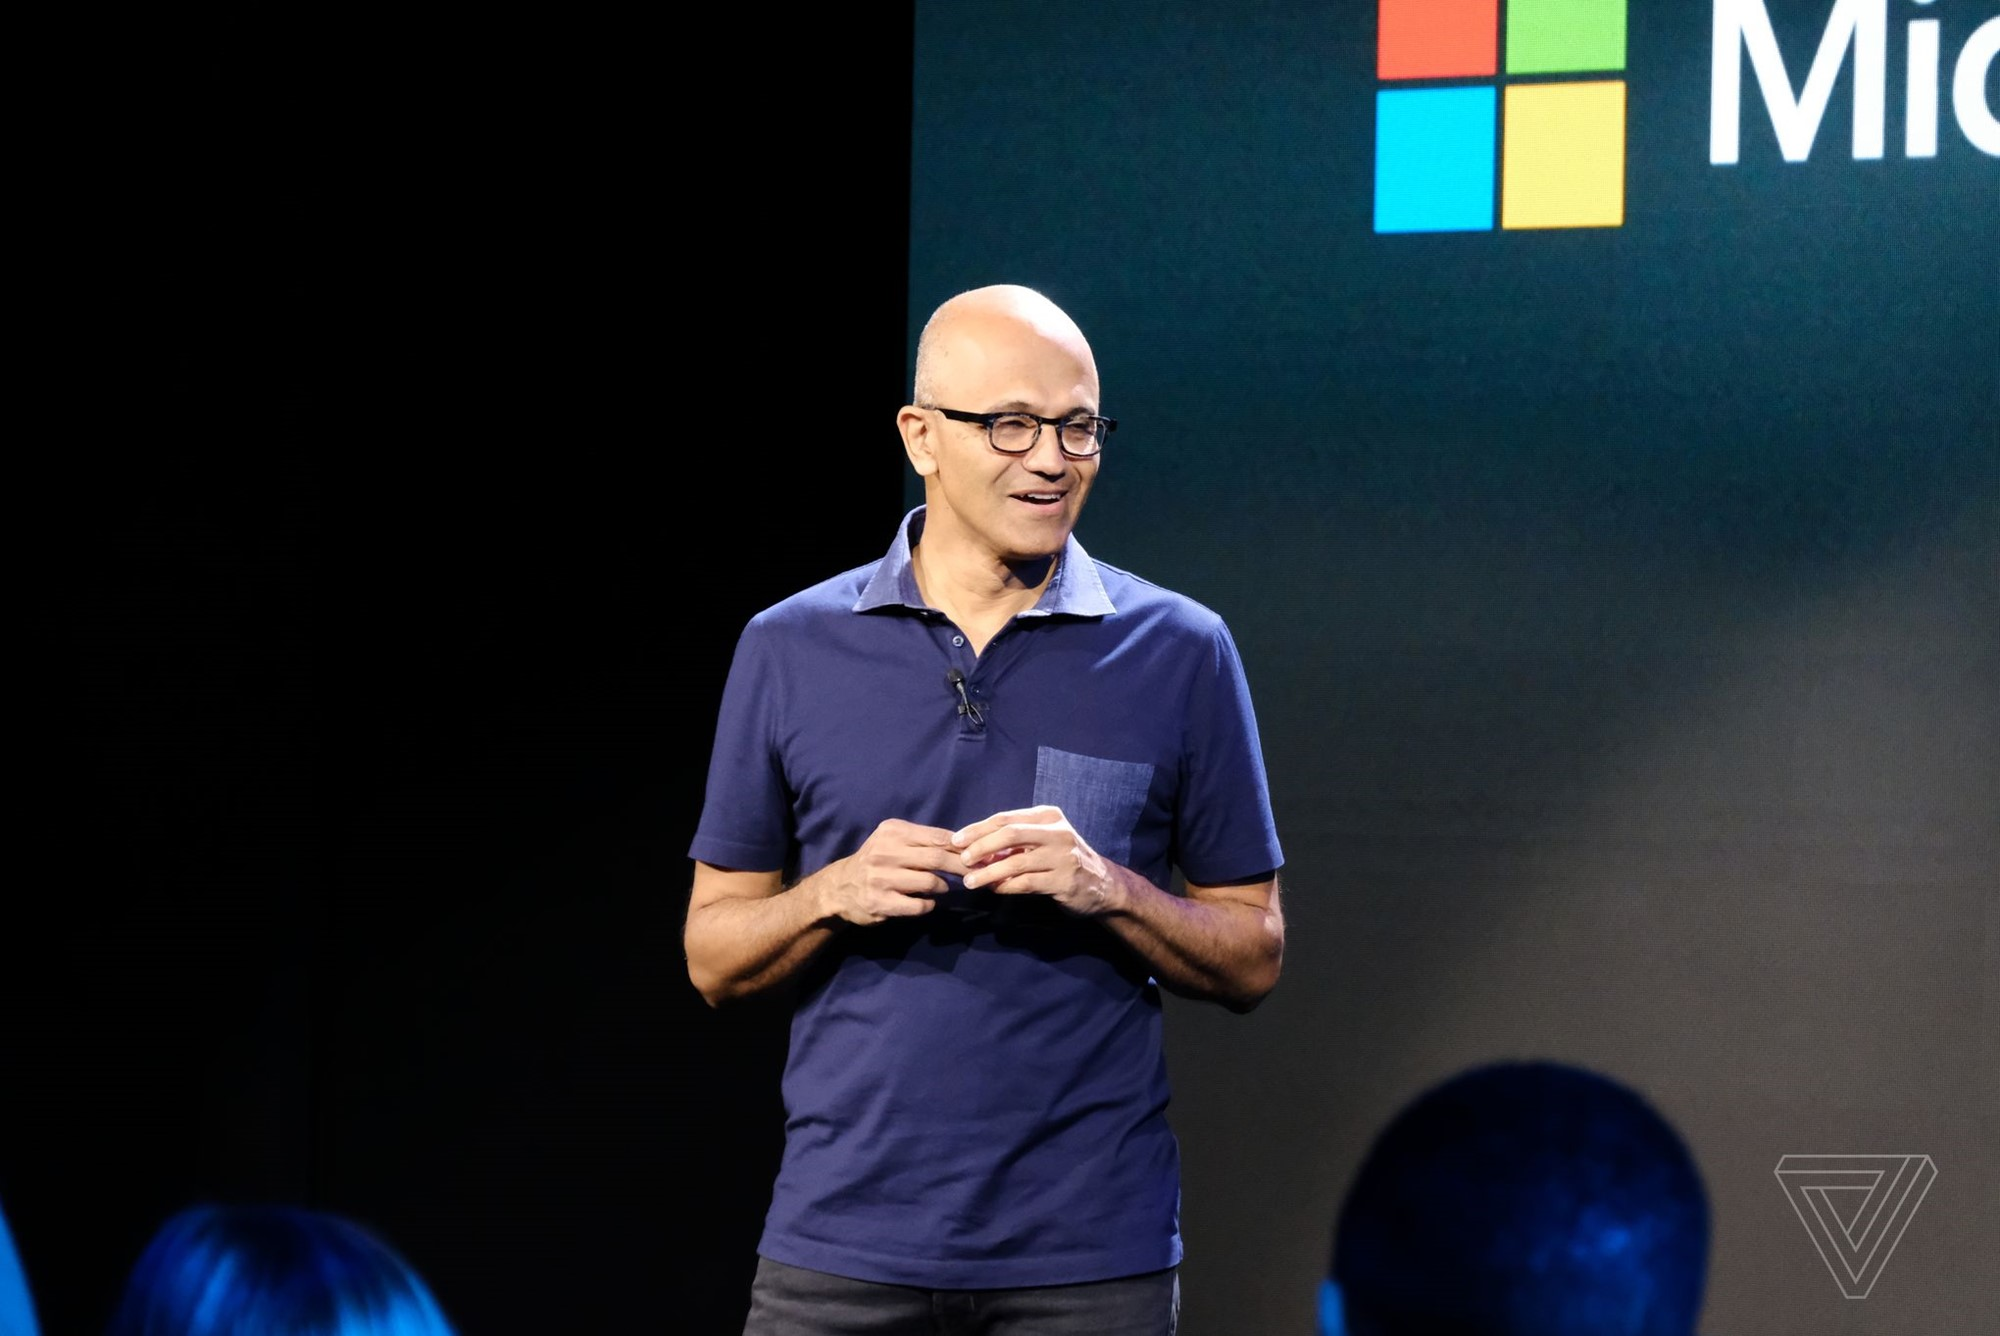 Satya Nadella at the 2019 Microsoft Surface event